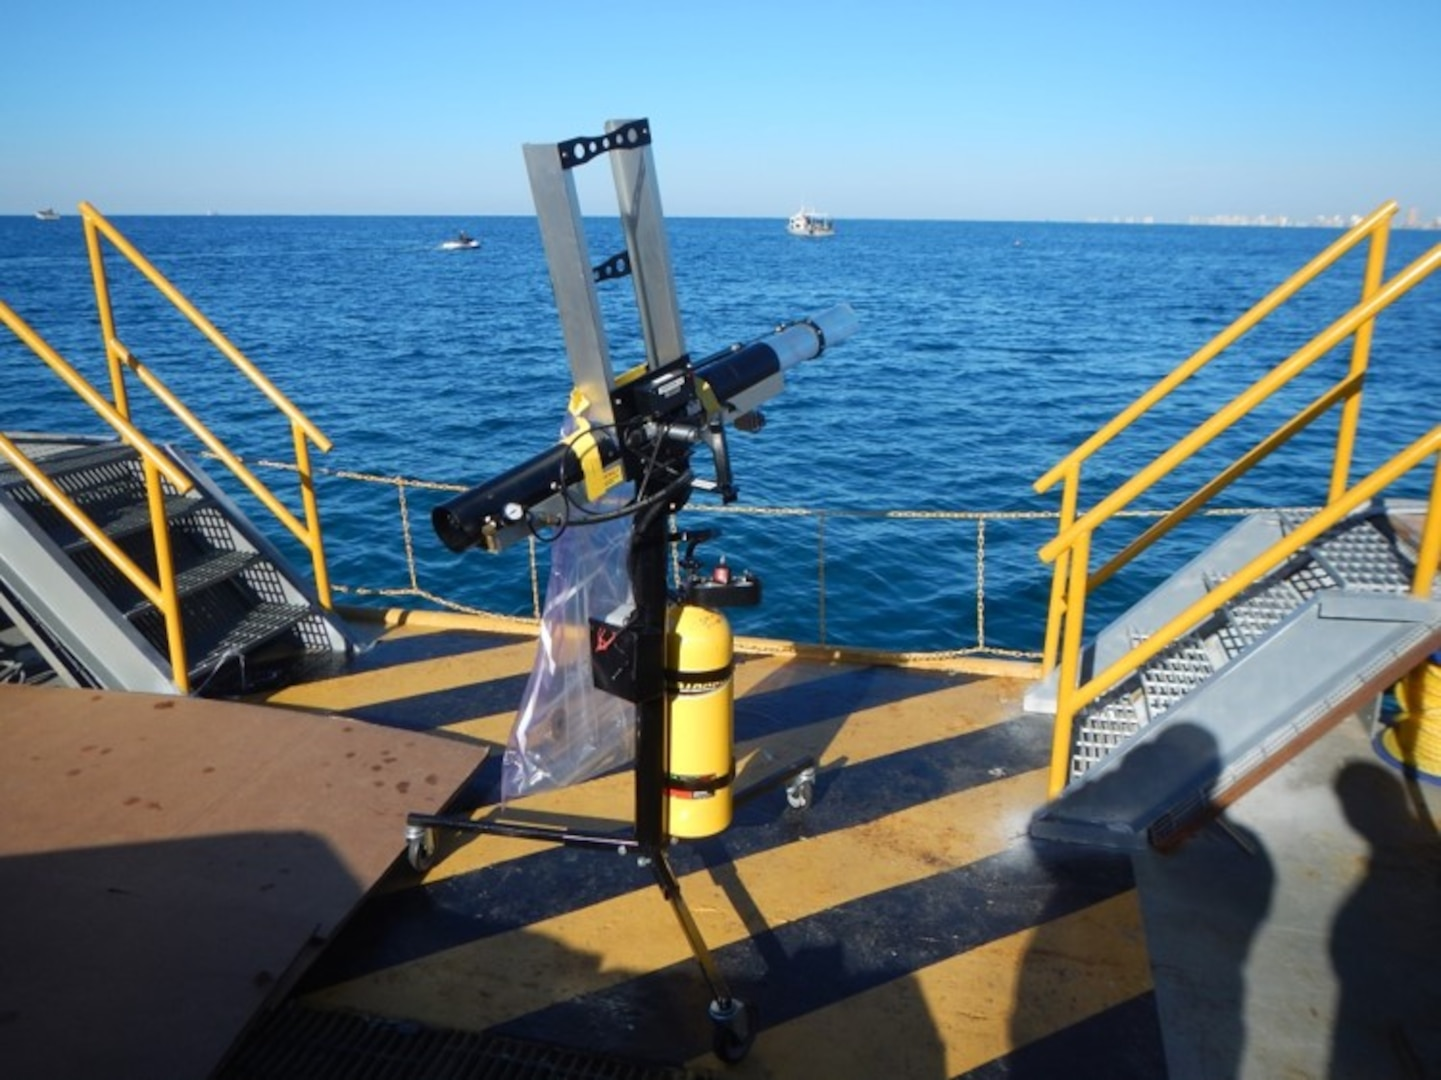 A standard, off-the-shelf, t-shirt cannon is used to shoot out the device for non-lethal stoppage of water jet propelled craft.